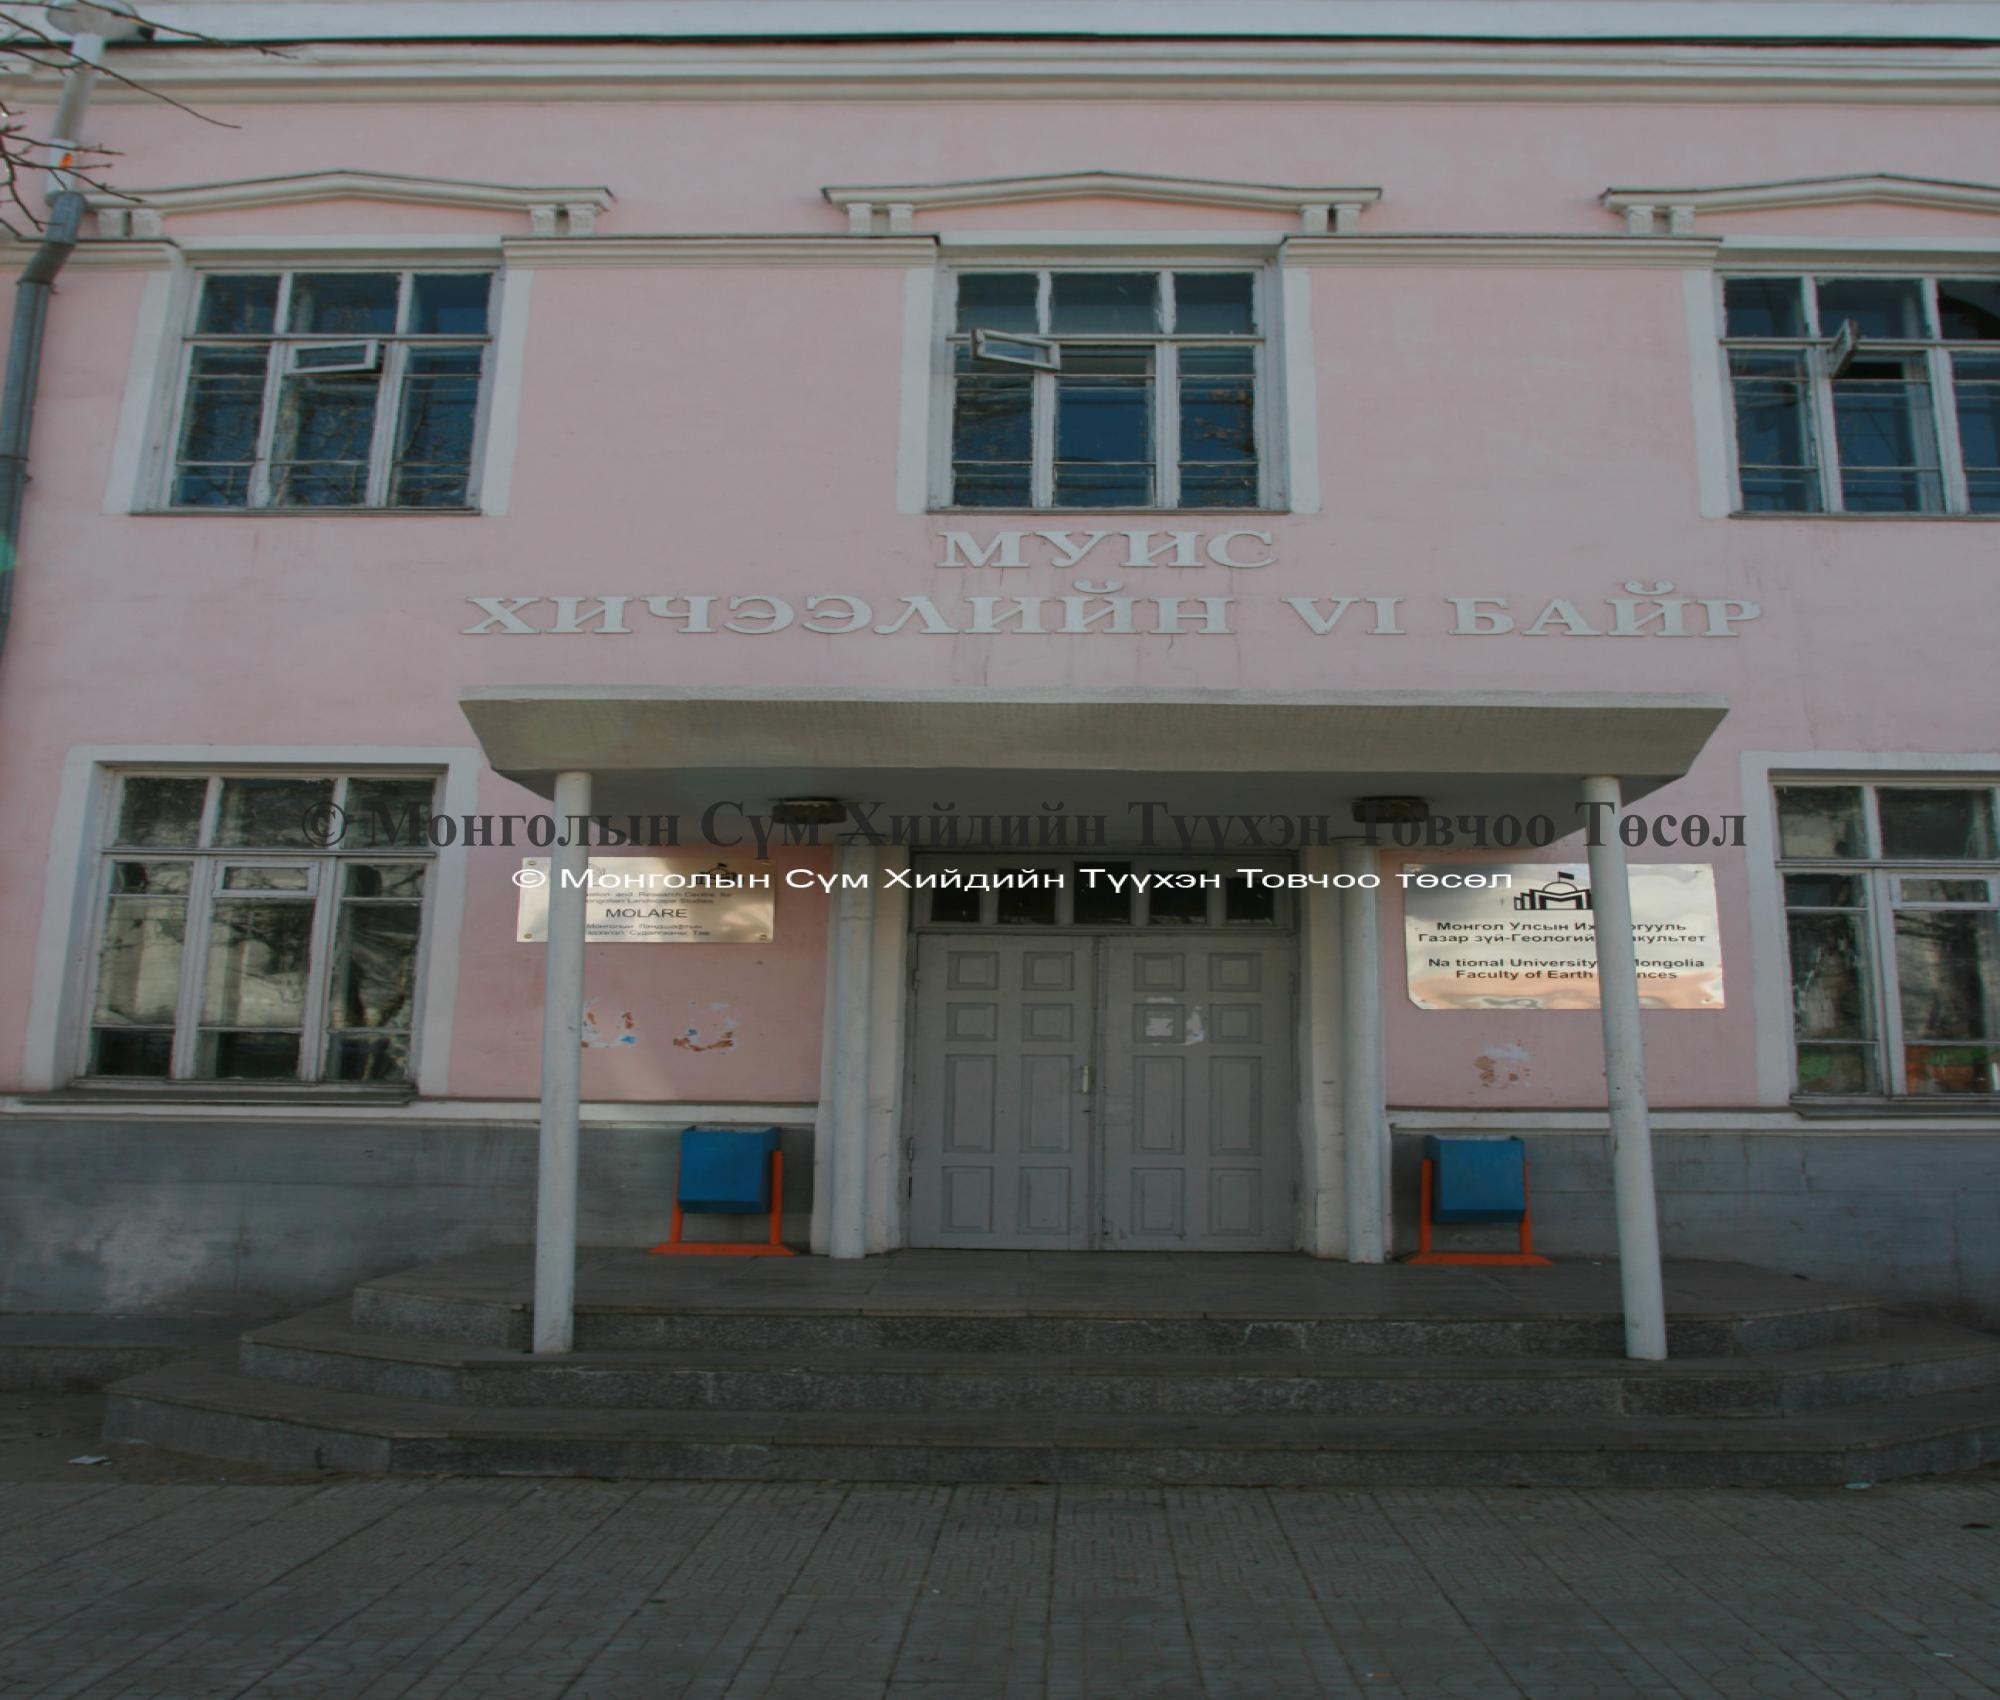 6th Building of the National University of Mongoli